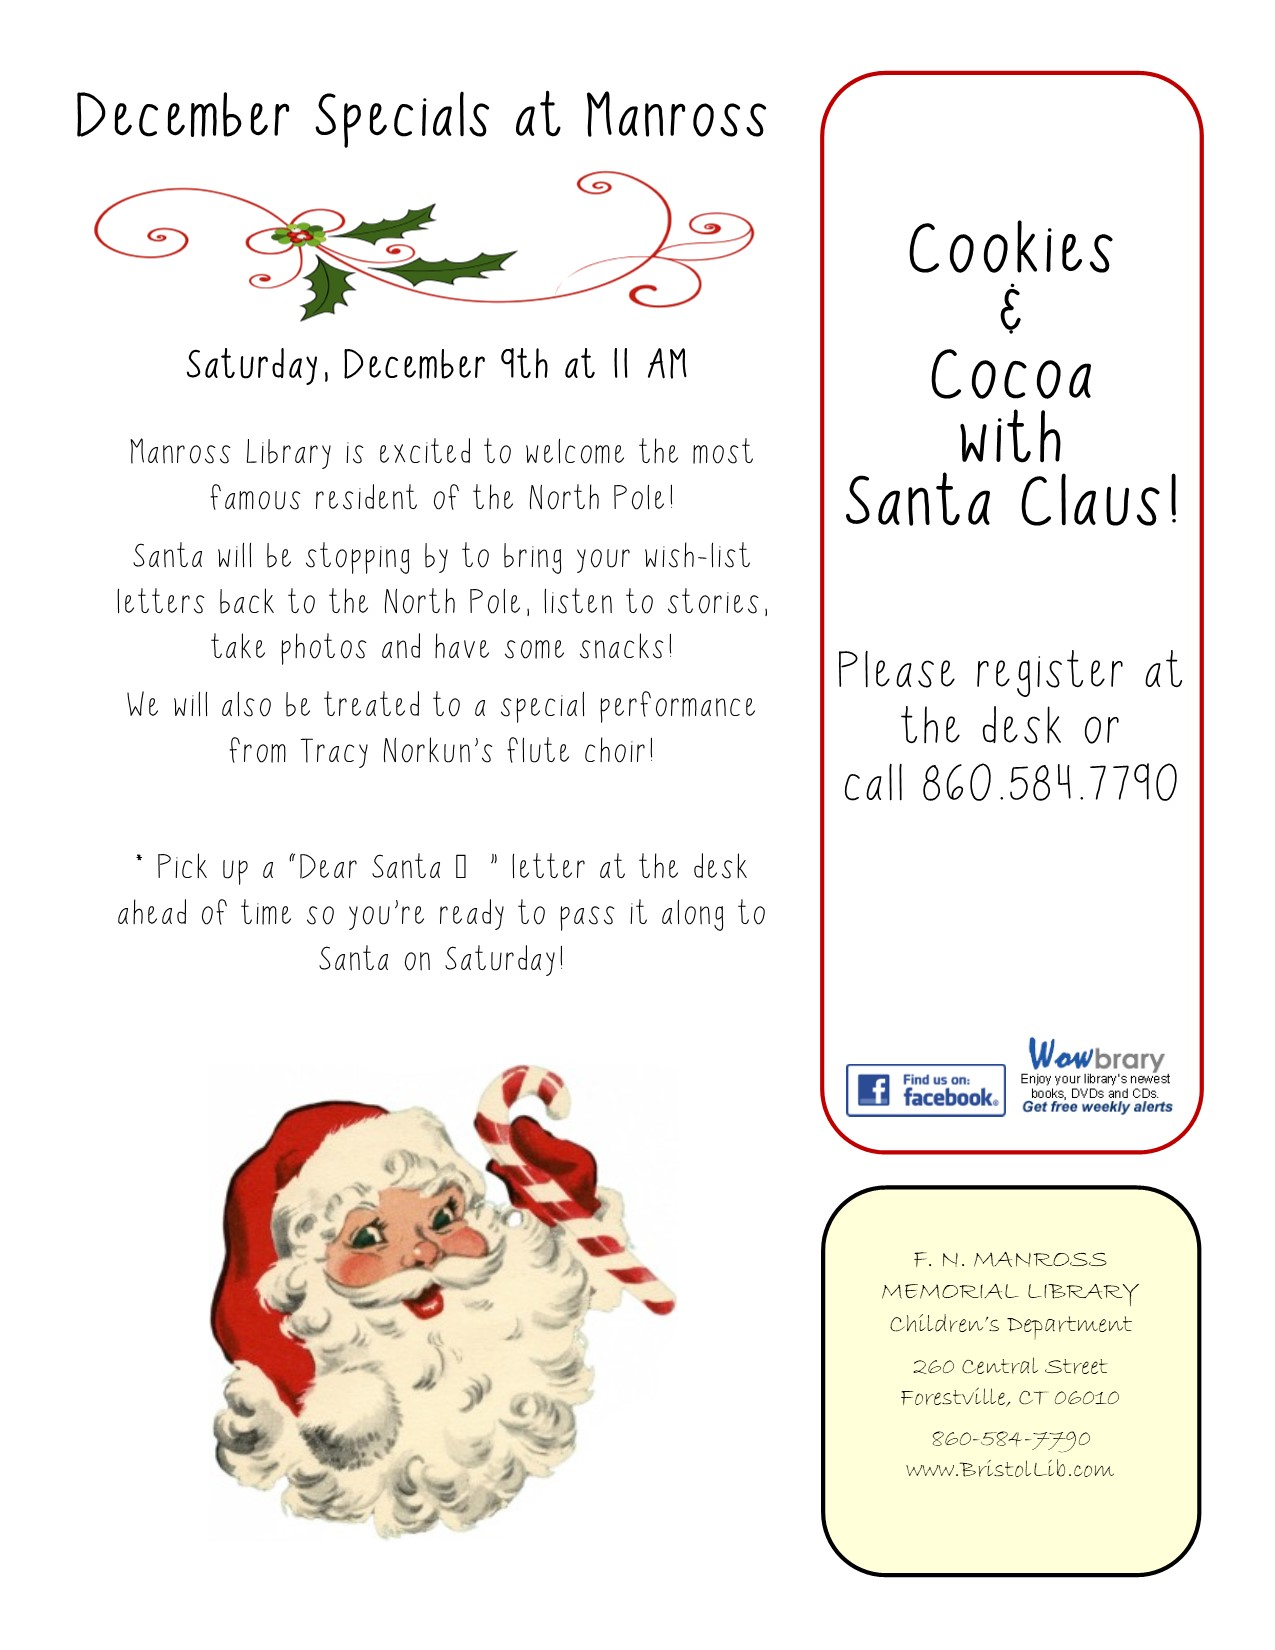 Cookies & Cocoa with Santa Claus at Manross! - Bristol Public Library